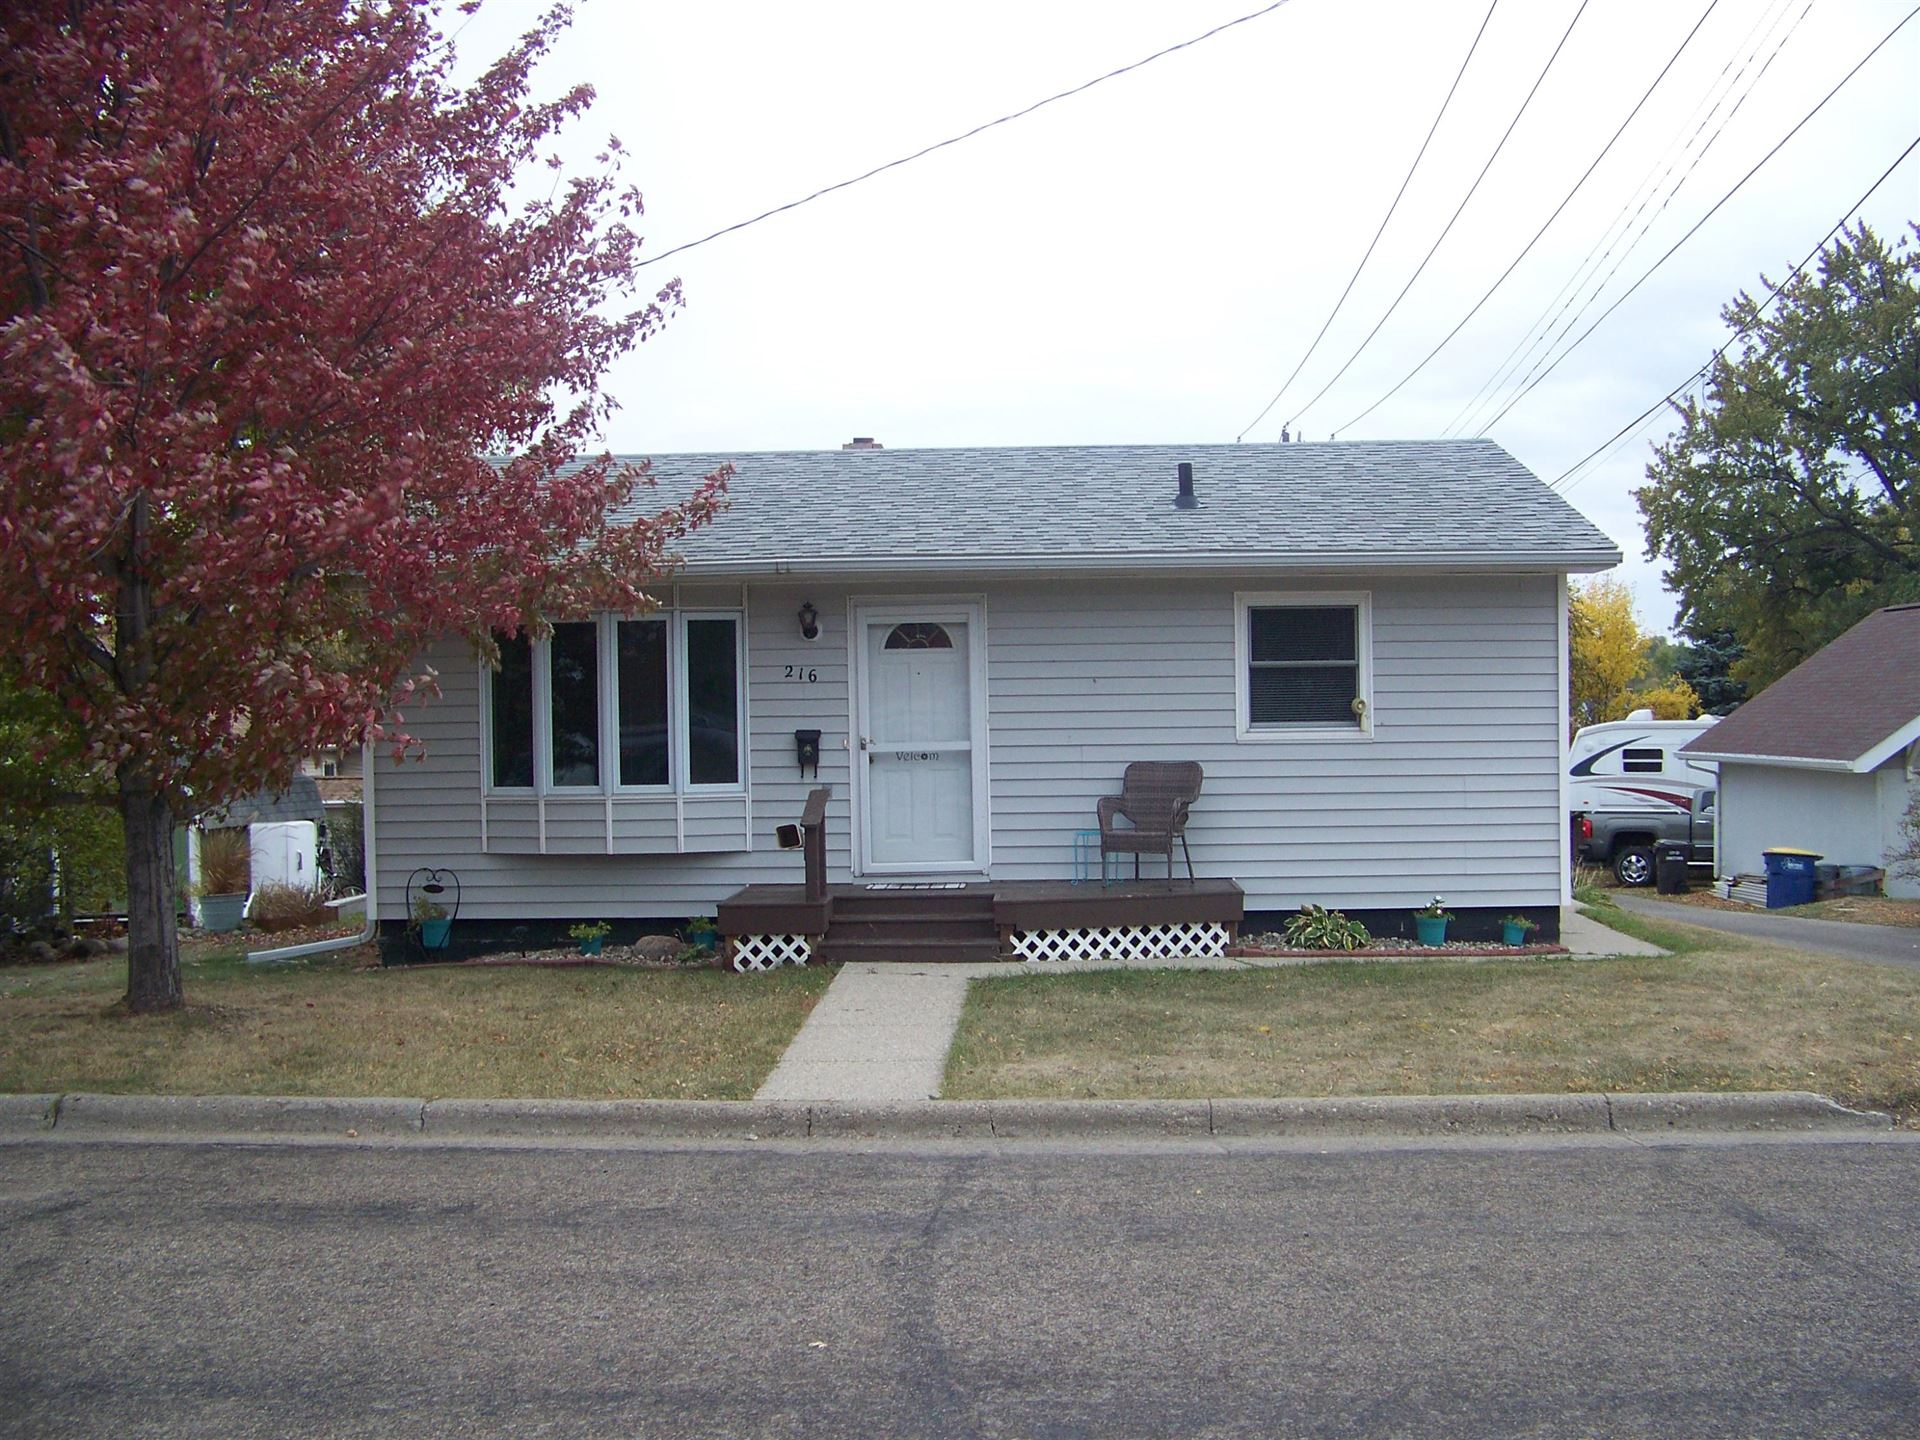 Photo for 216 8th Street SE, Jamestown, ND 58401 (MLS # 20-577)